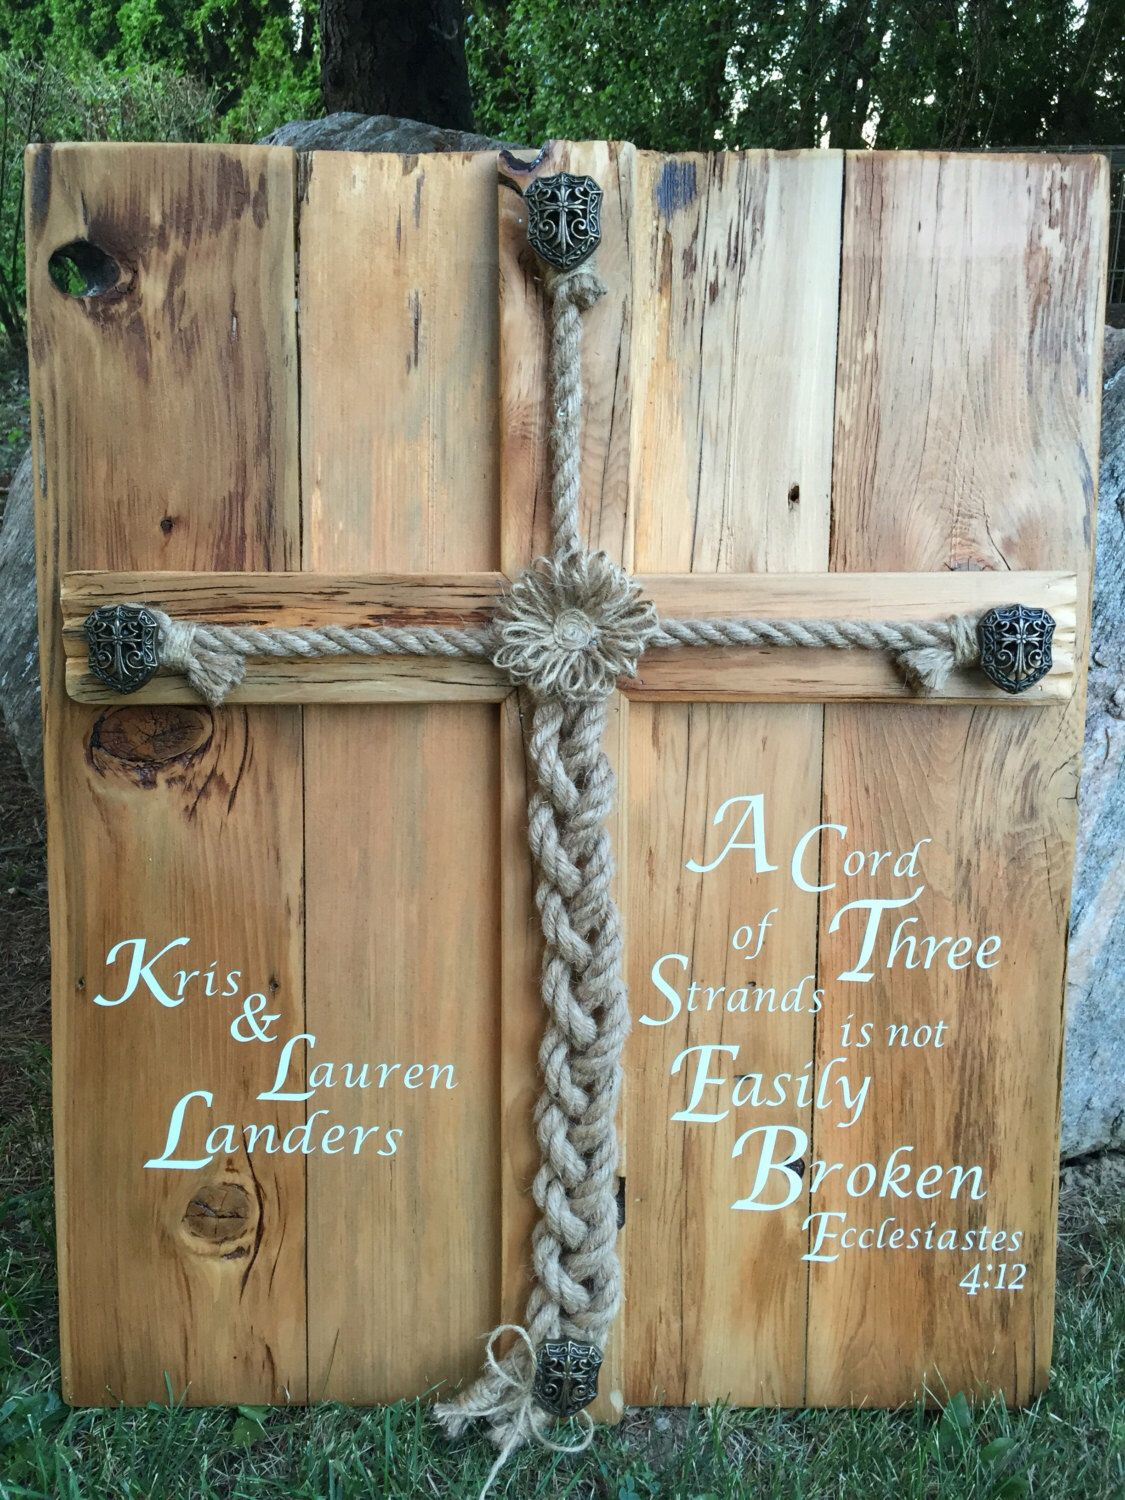 Personalized Rustic Wedding Alternative Unity Ceremony Idea Jute Braided Rope Sign Cord Of Three Scripture Ecclesiastes